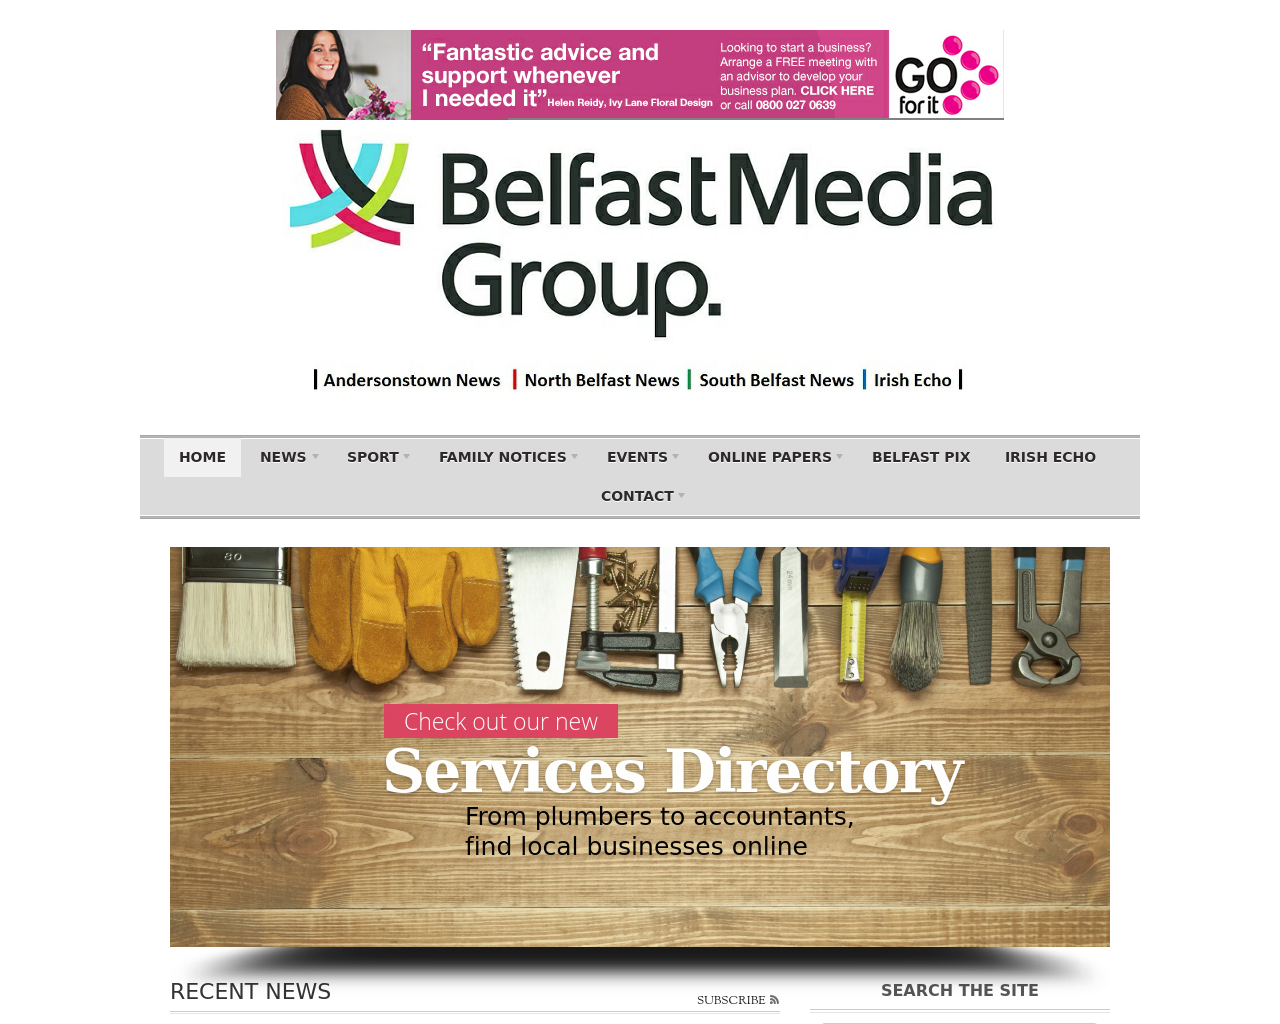 Belfast-Media-Group-Advertising-Reviews-Pricing